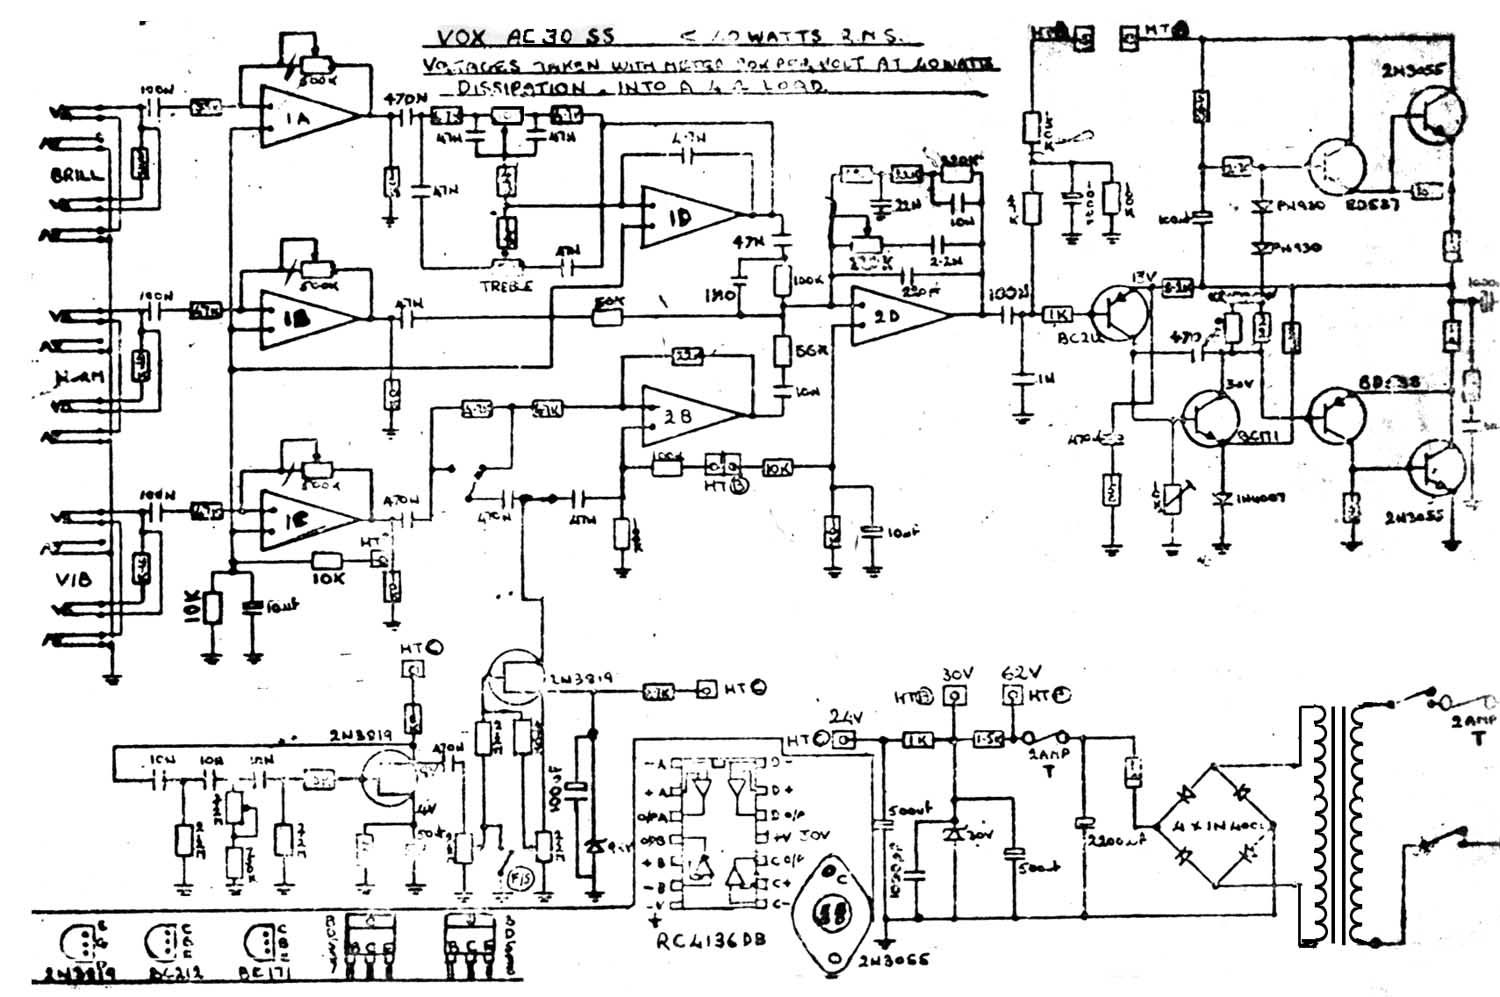 Vox Vintage Circuit Diagrams 300 Amp Service Panel Wiring Diagram Download